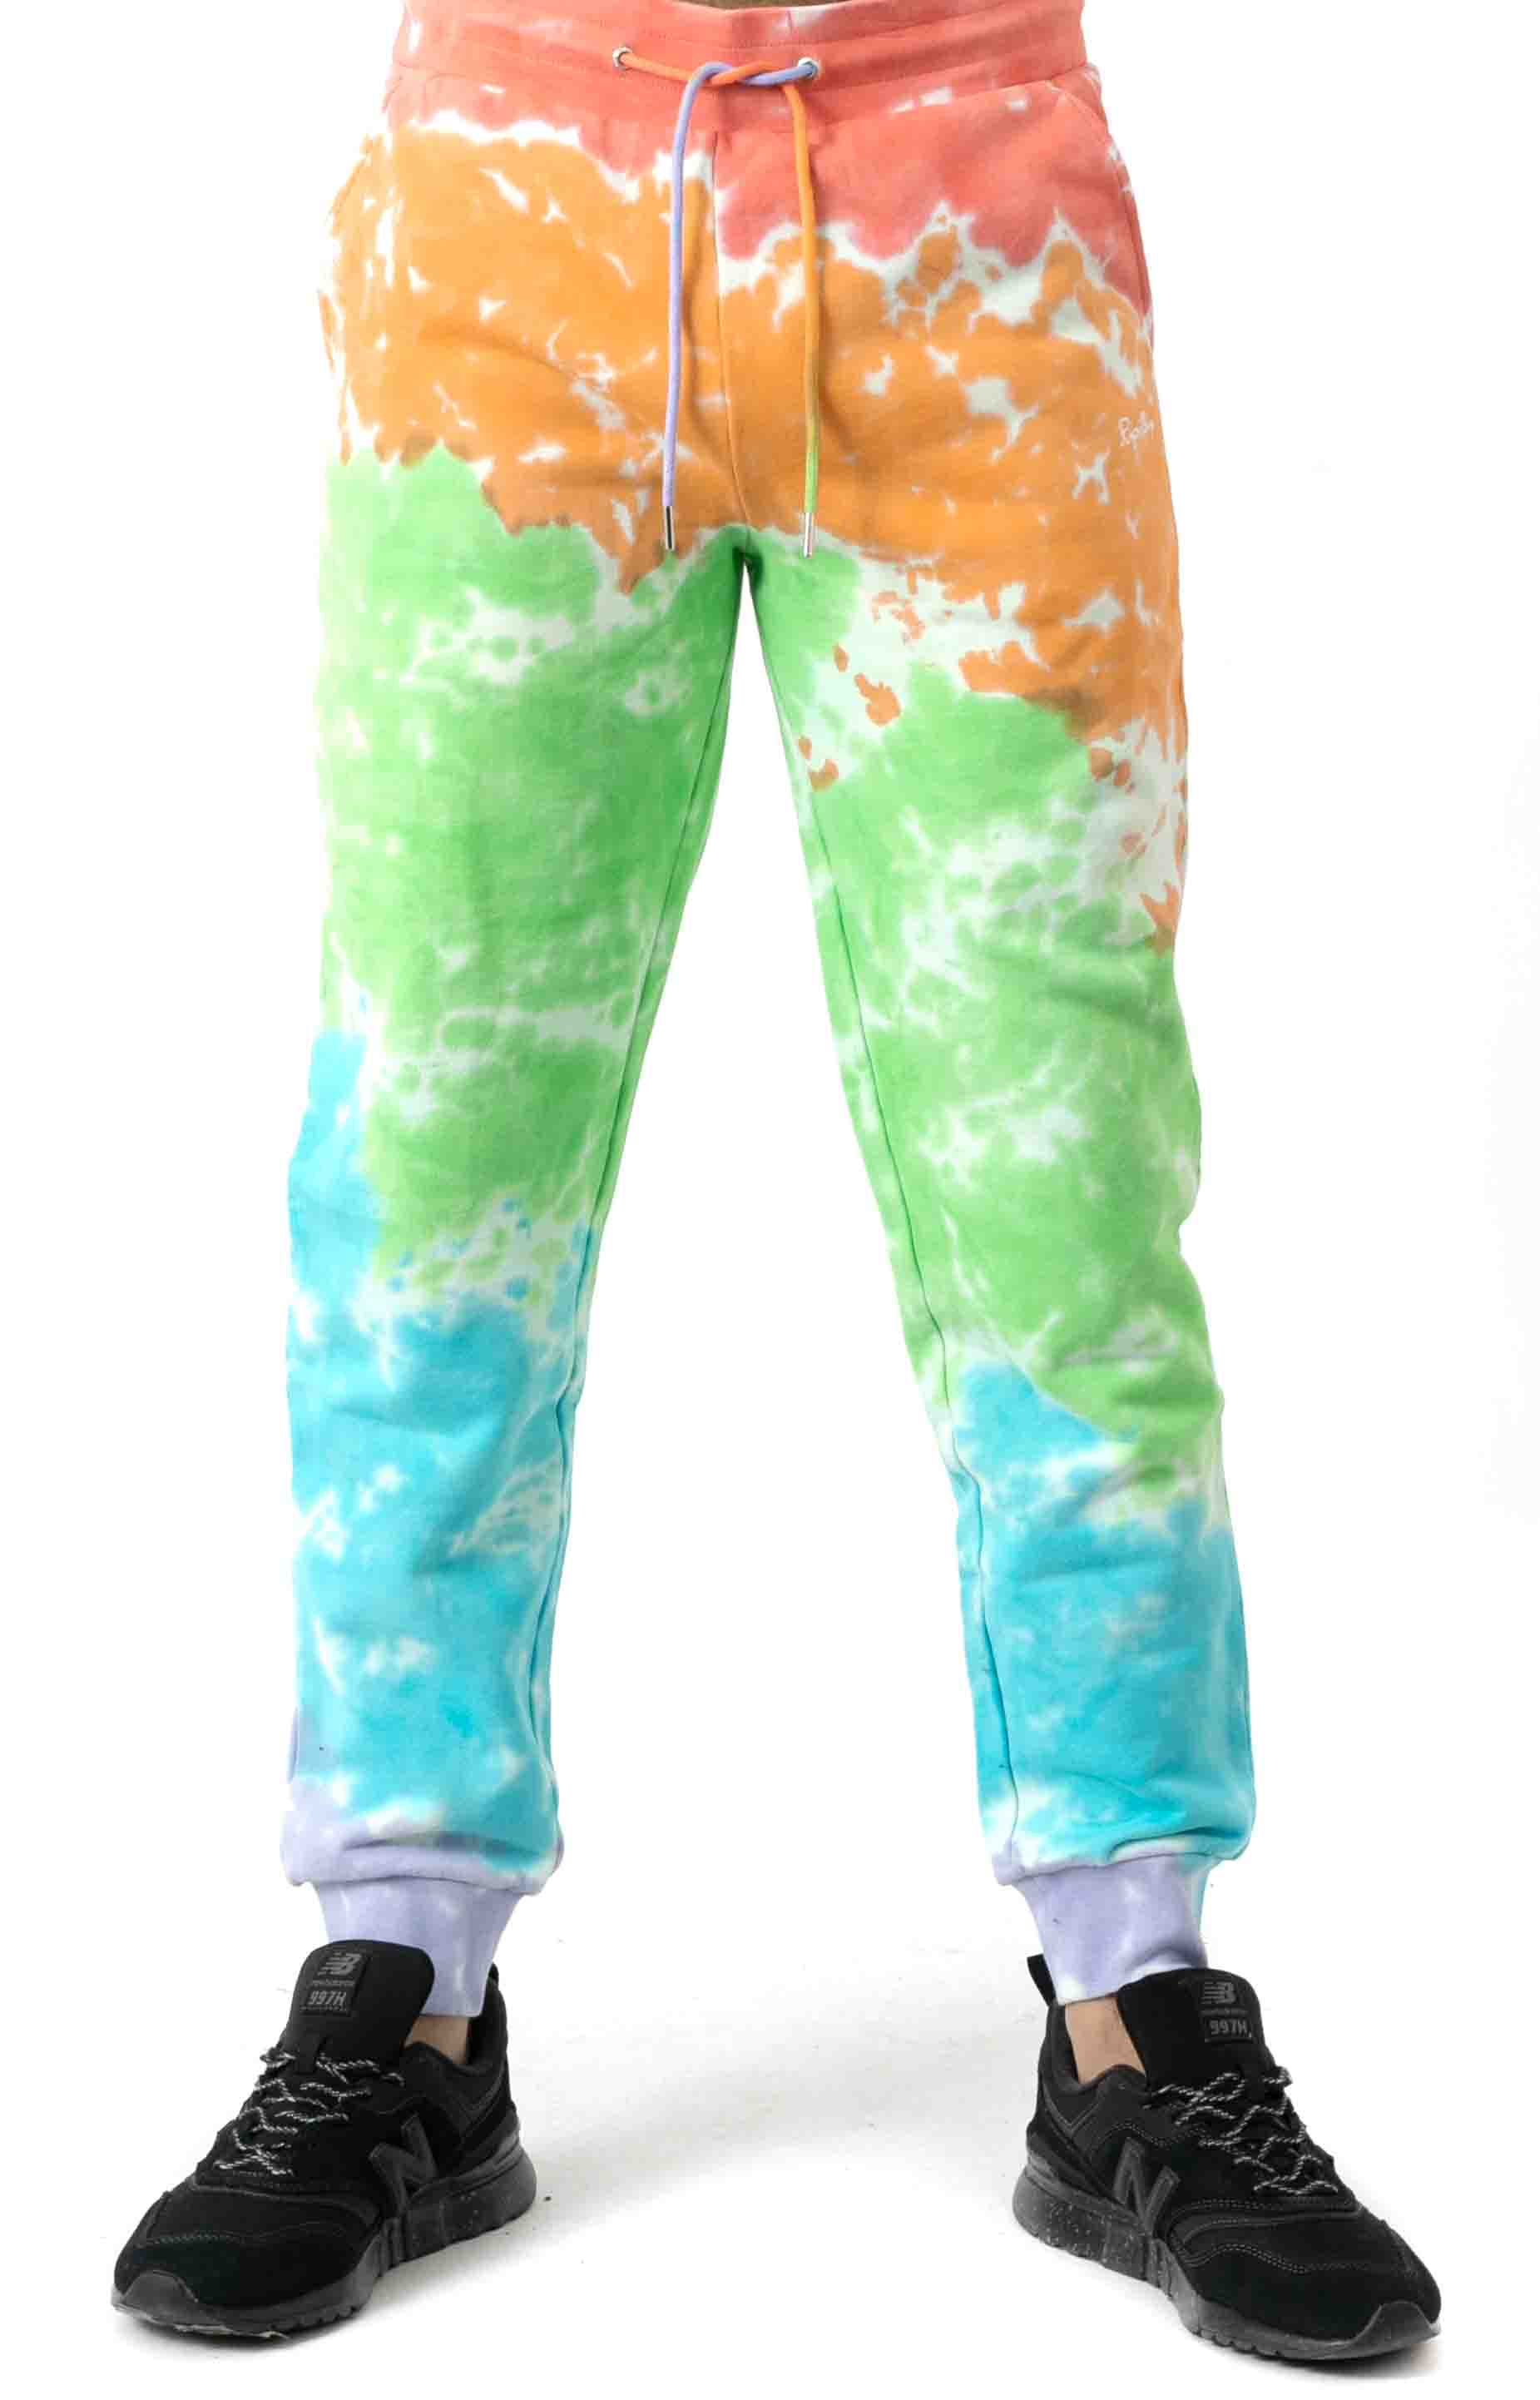 Peeking Nerm Sweatpants - Blotch Tie-Dye 2